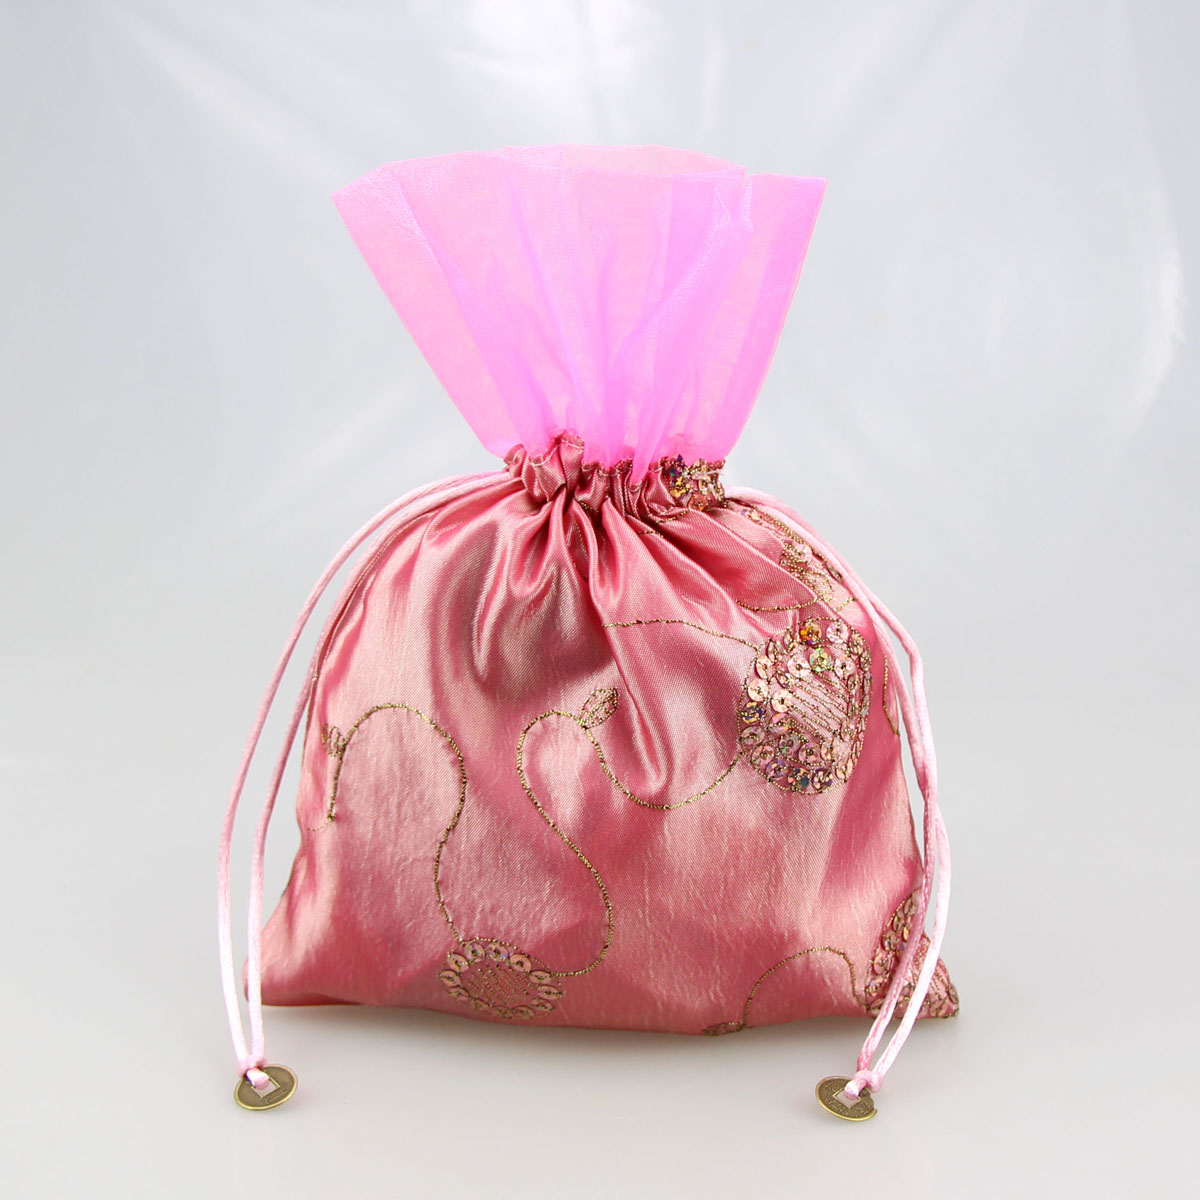 HOTER Organza and Trilobal Nylon with Drawstring, Jewelry Bags ...